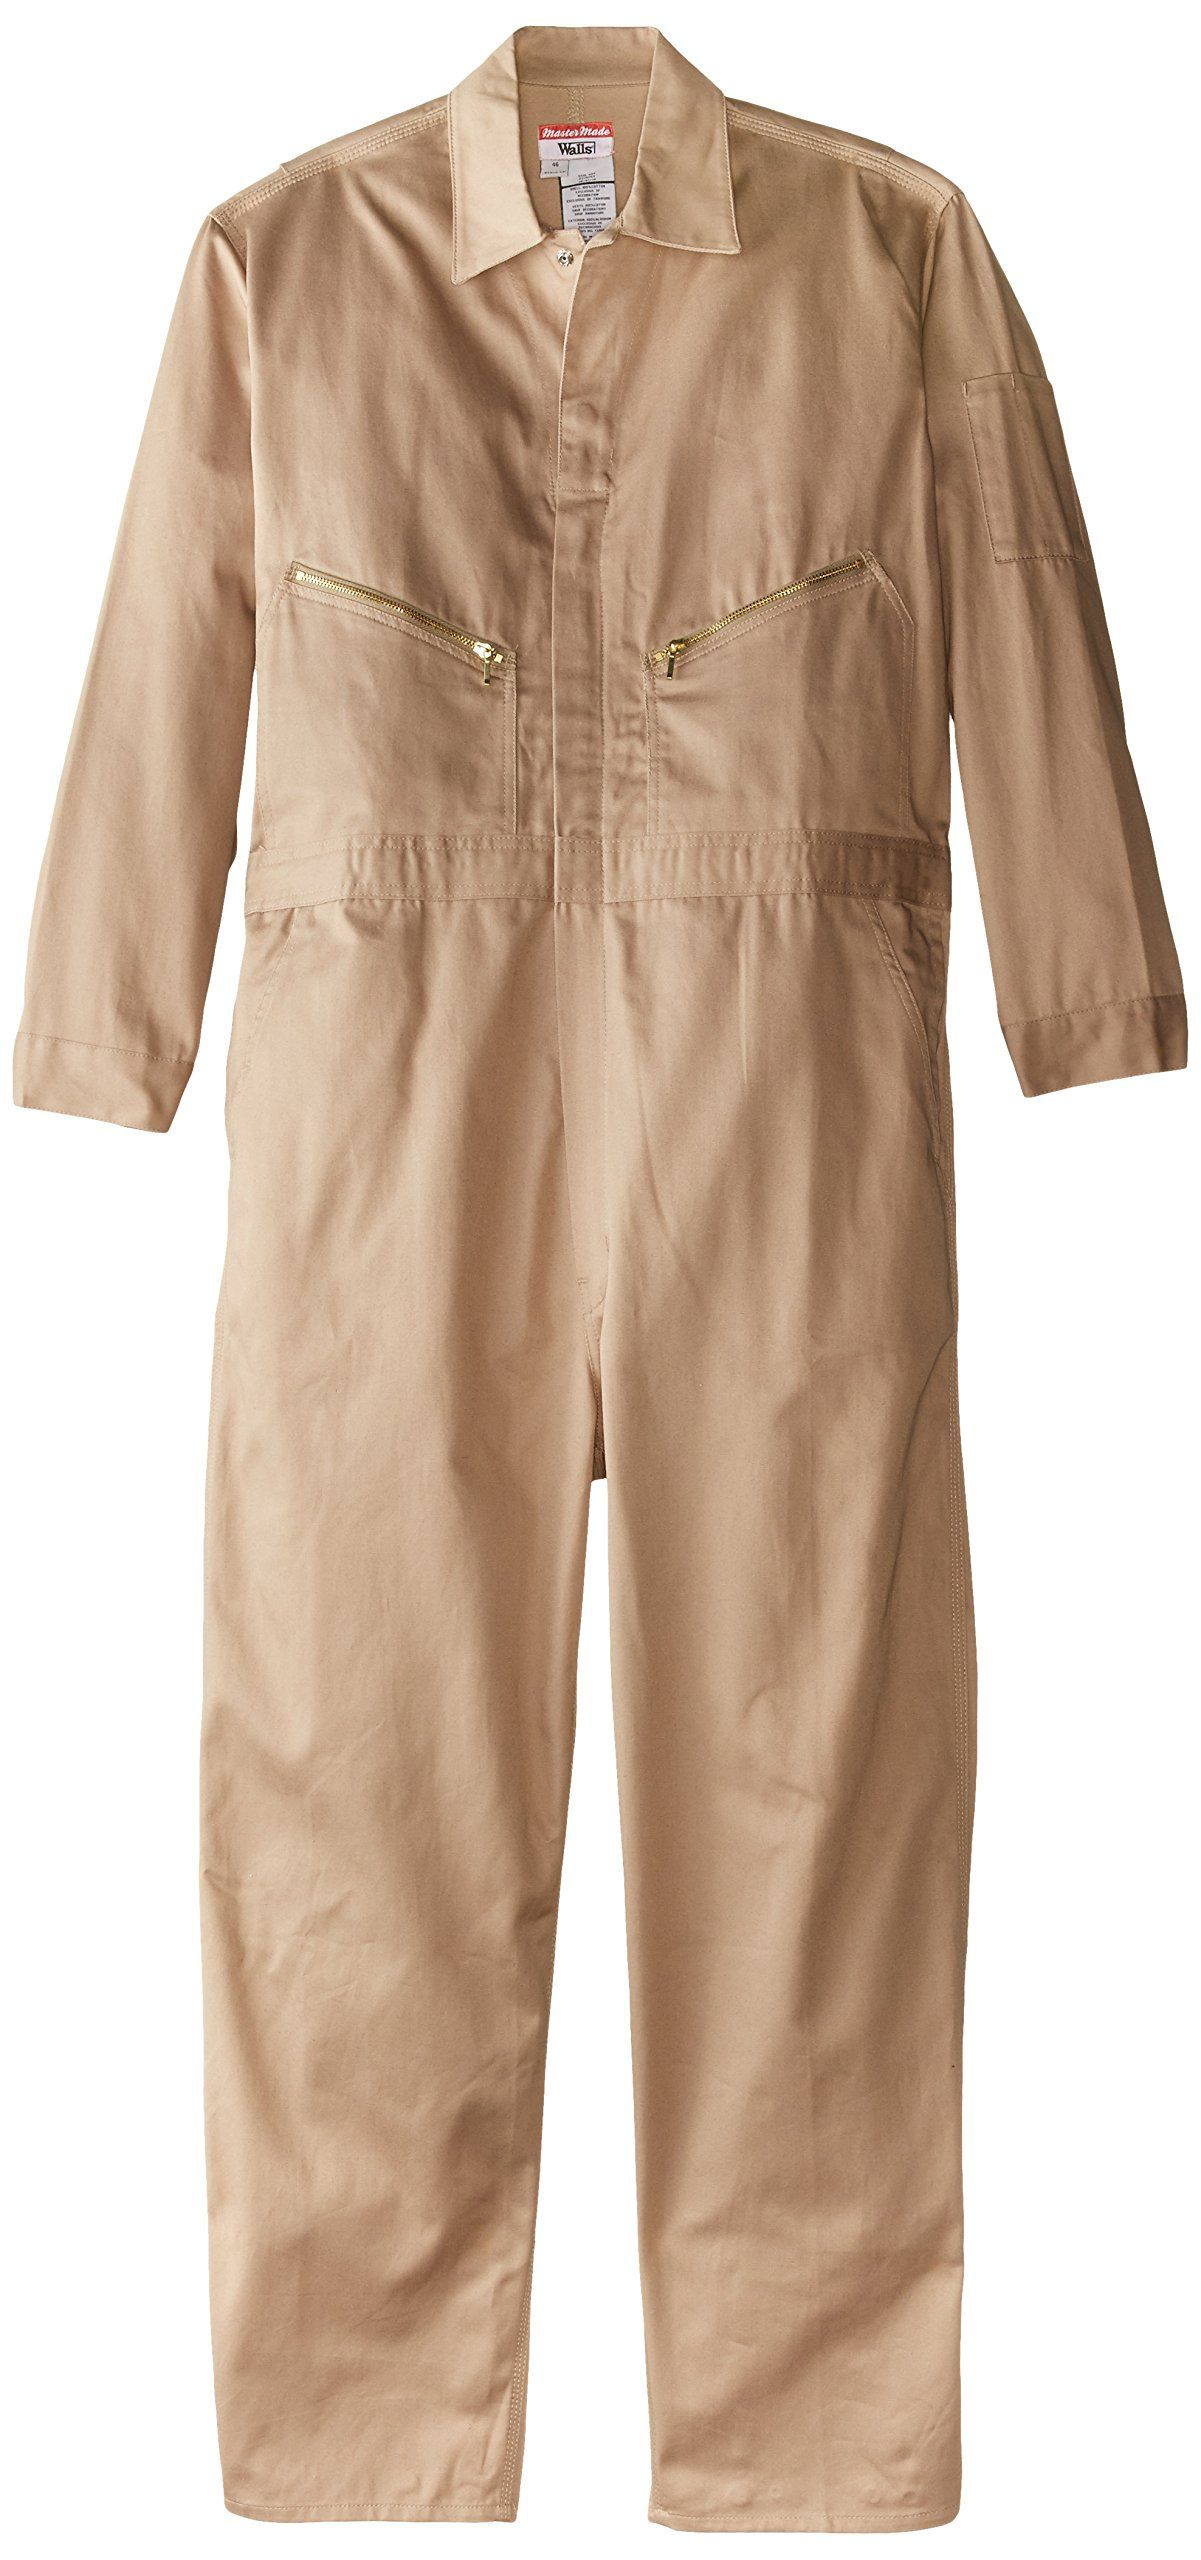 walls work men s long sleeve twill coverall khaki 38 on wall insulated coveralls for men id=18764